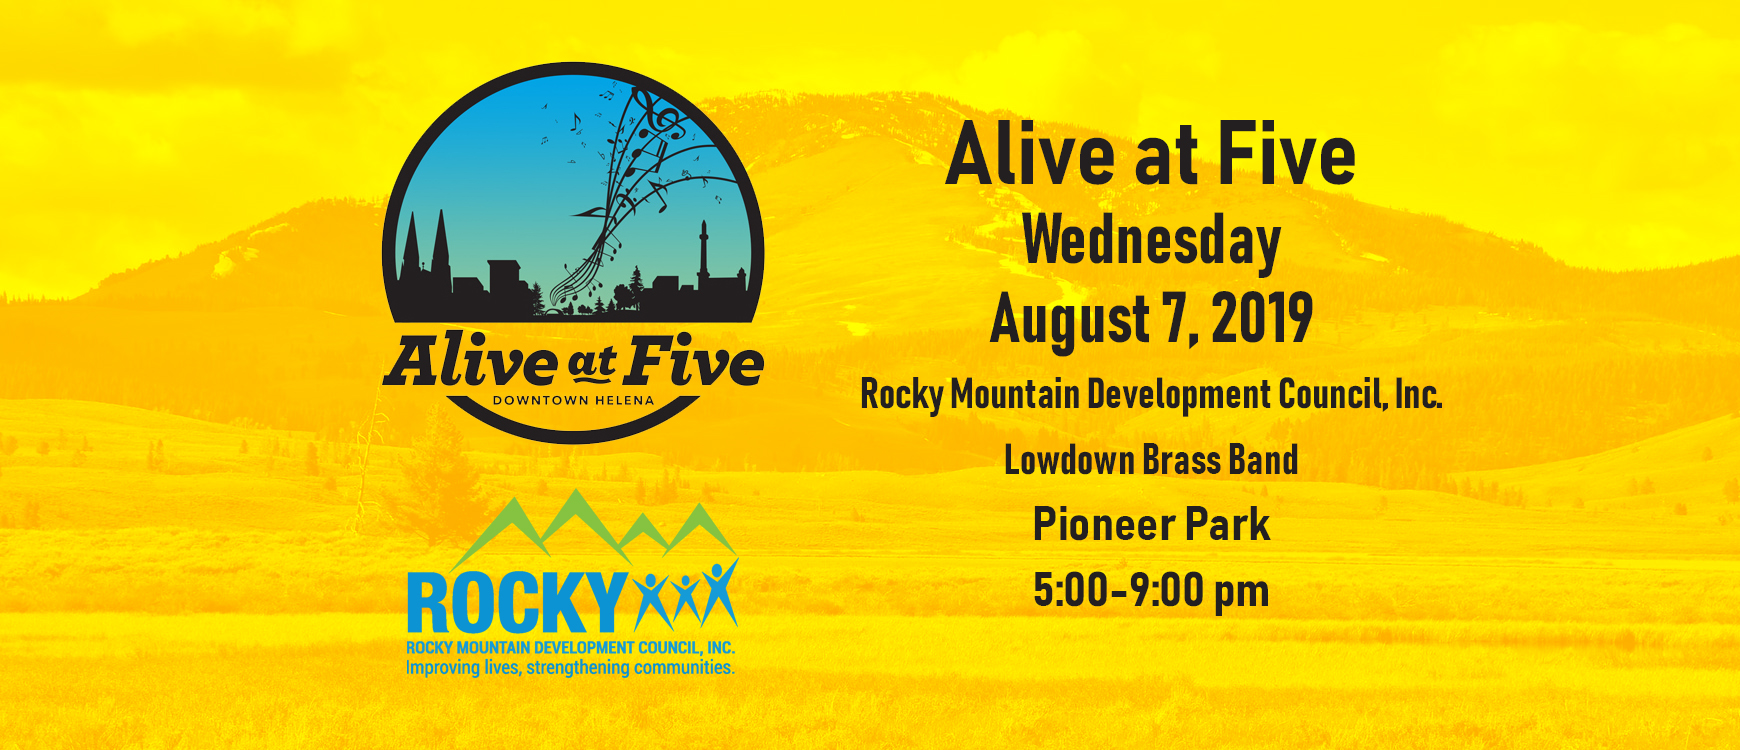 Rocky at Alive at Five!